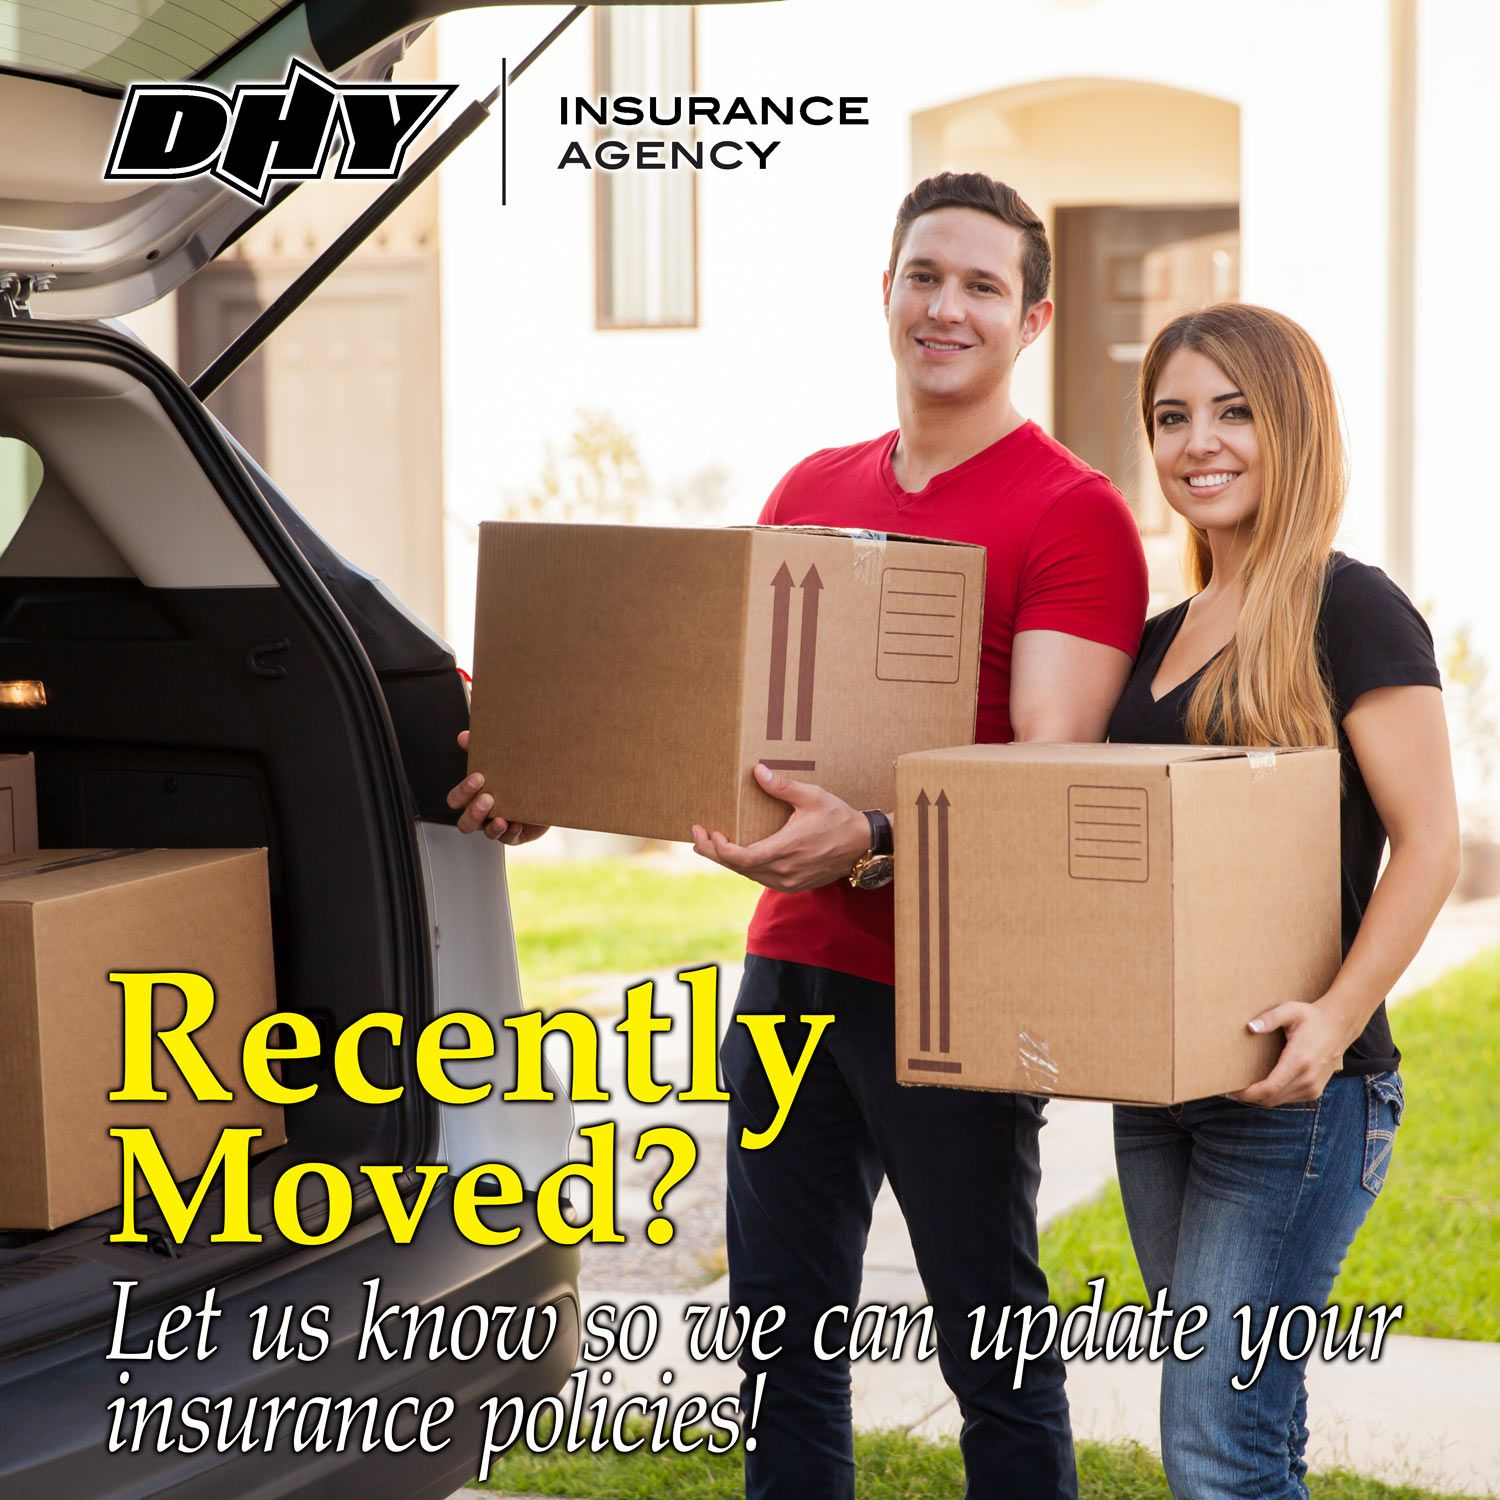 Have you recently moved? Be sure to update your insurance